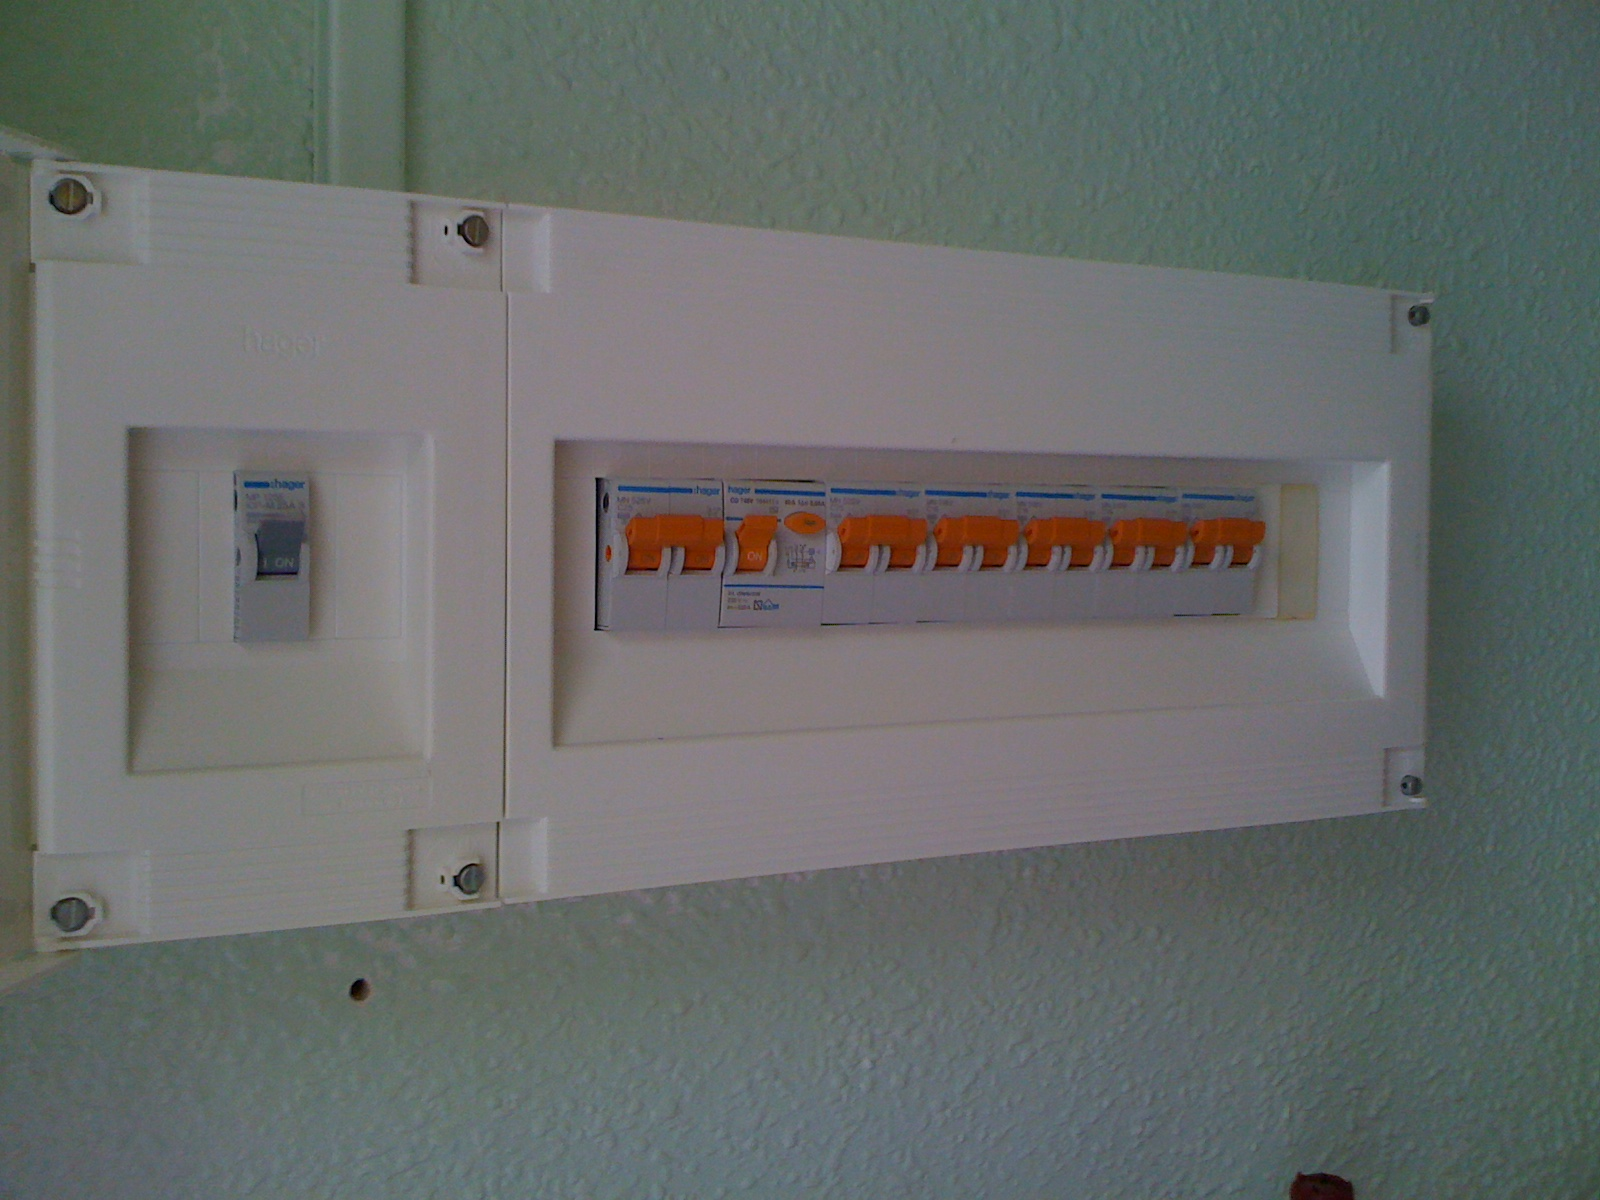 Consumer Units - Sparks in Spain on